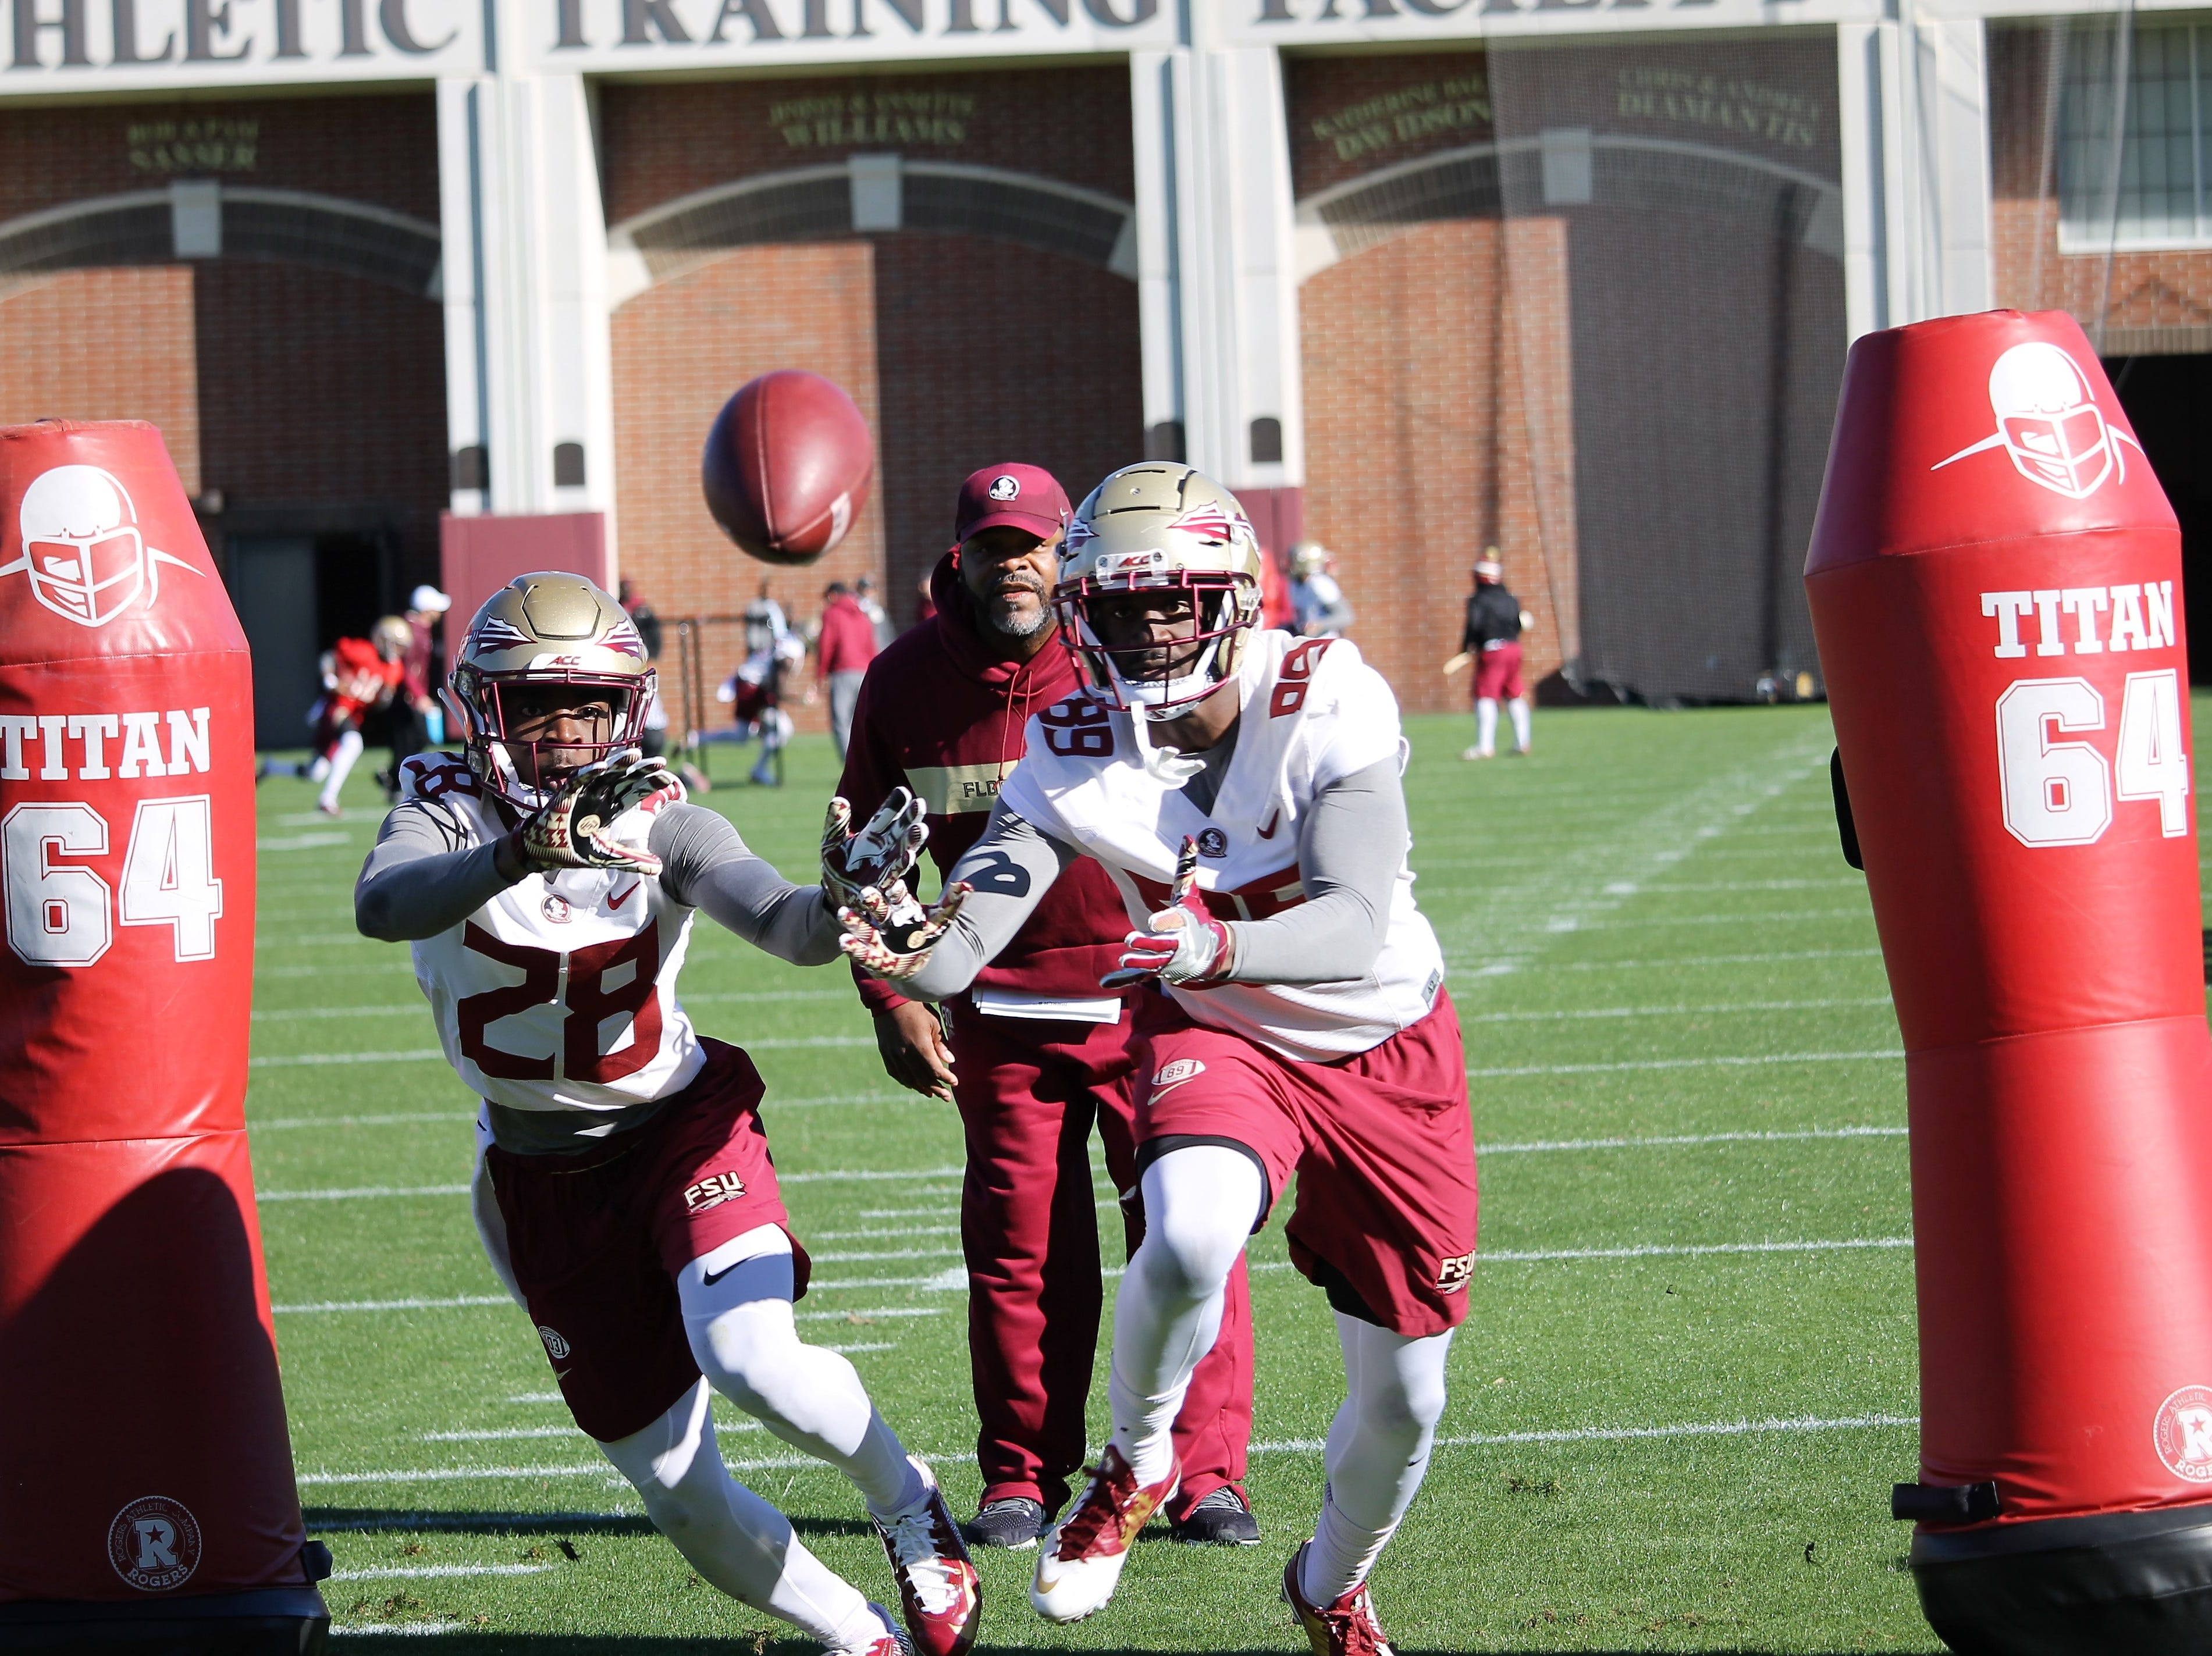 Wide receivers D'Marcus Adams (28) and Keith Gavin (89) at FSU football practice on March 6, 2019.